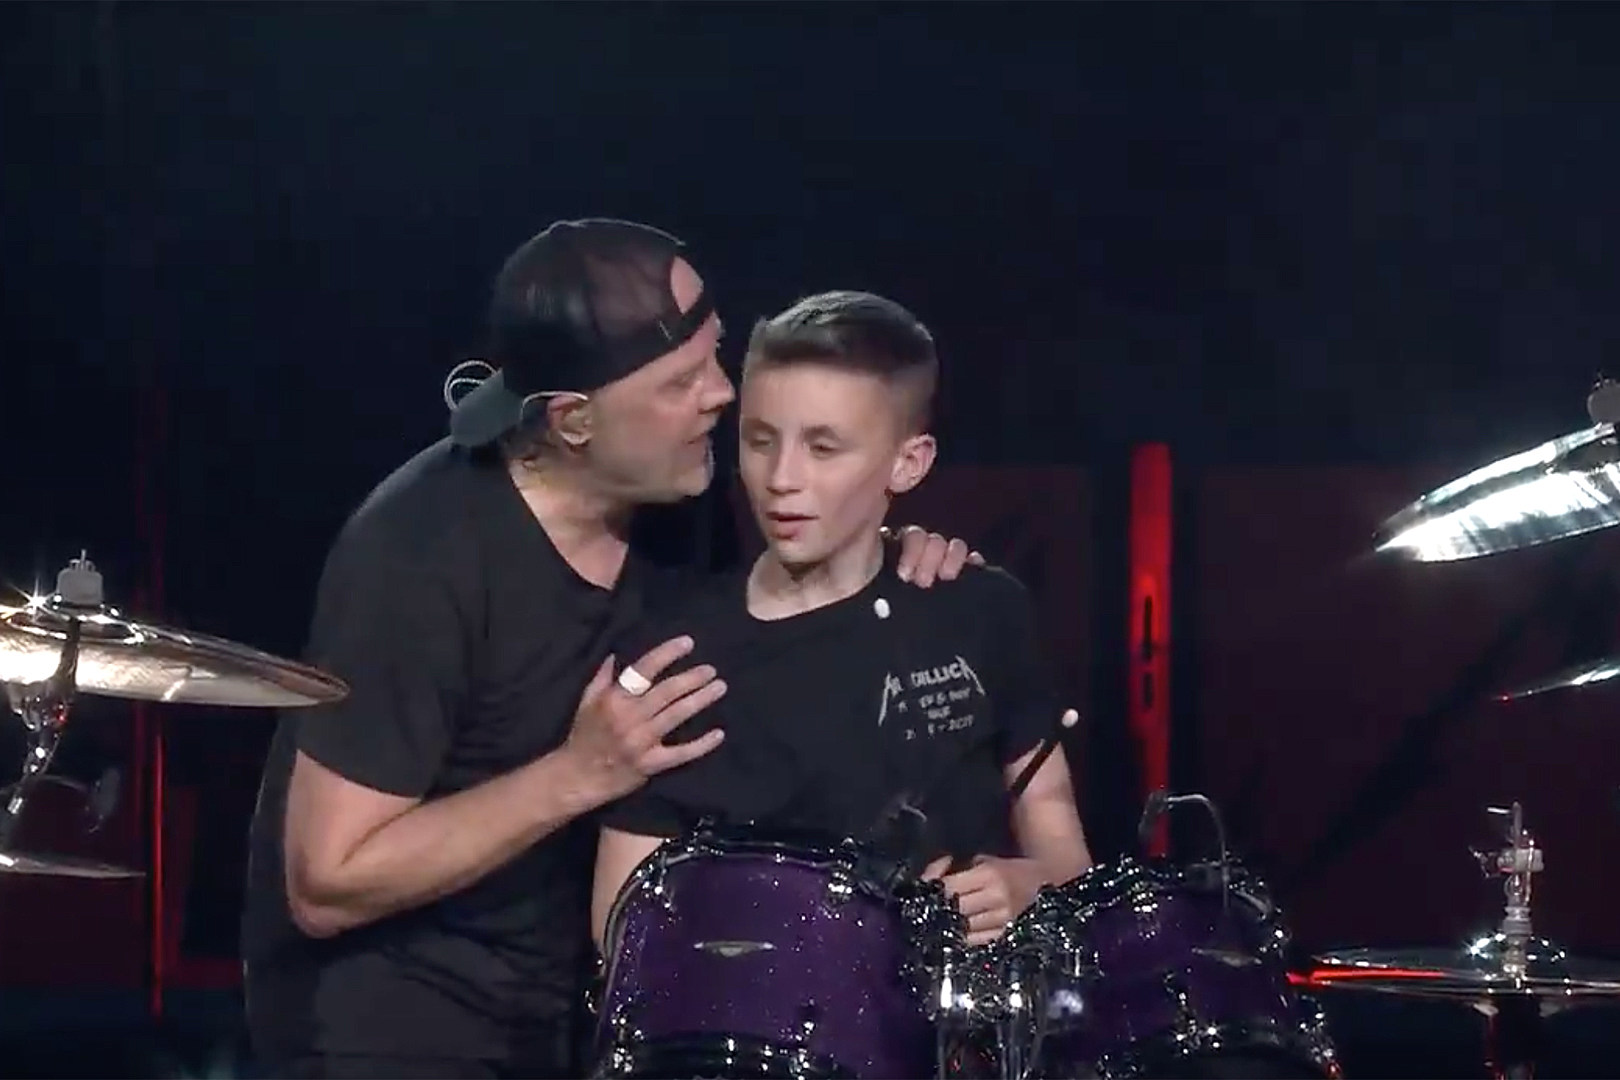 Metallica Perform With 13-Year-Old Drummer for His Birthday